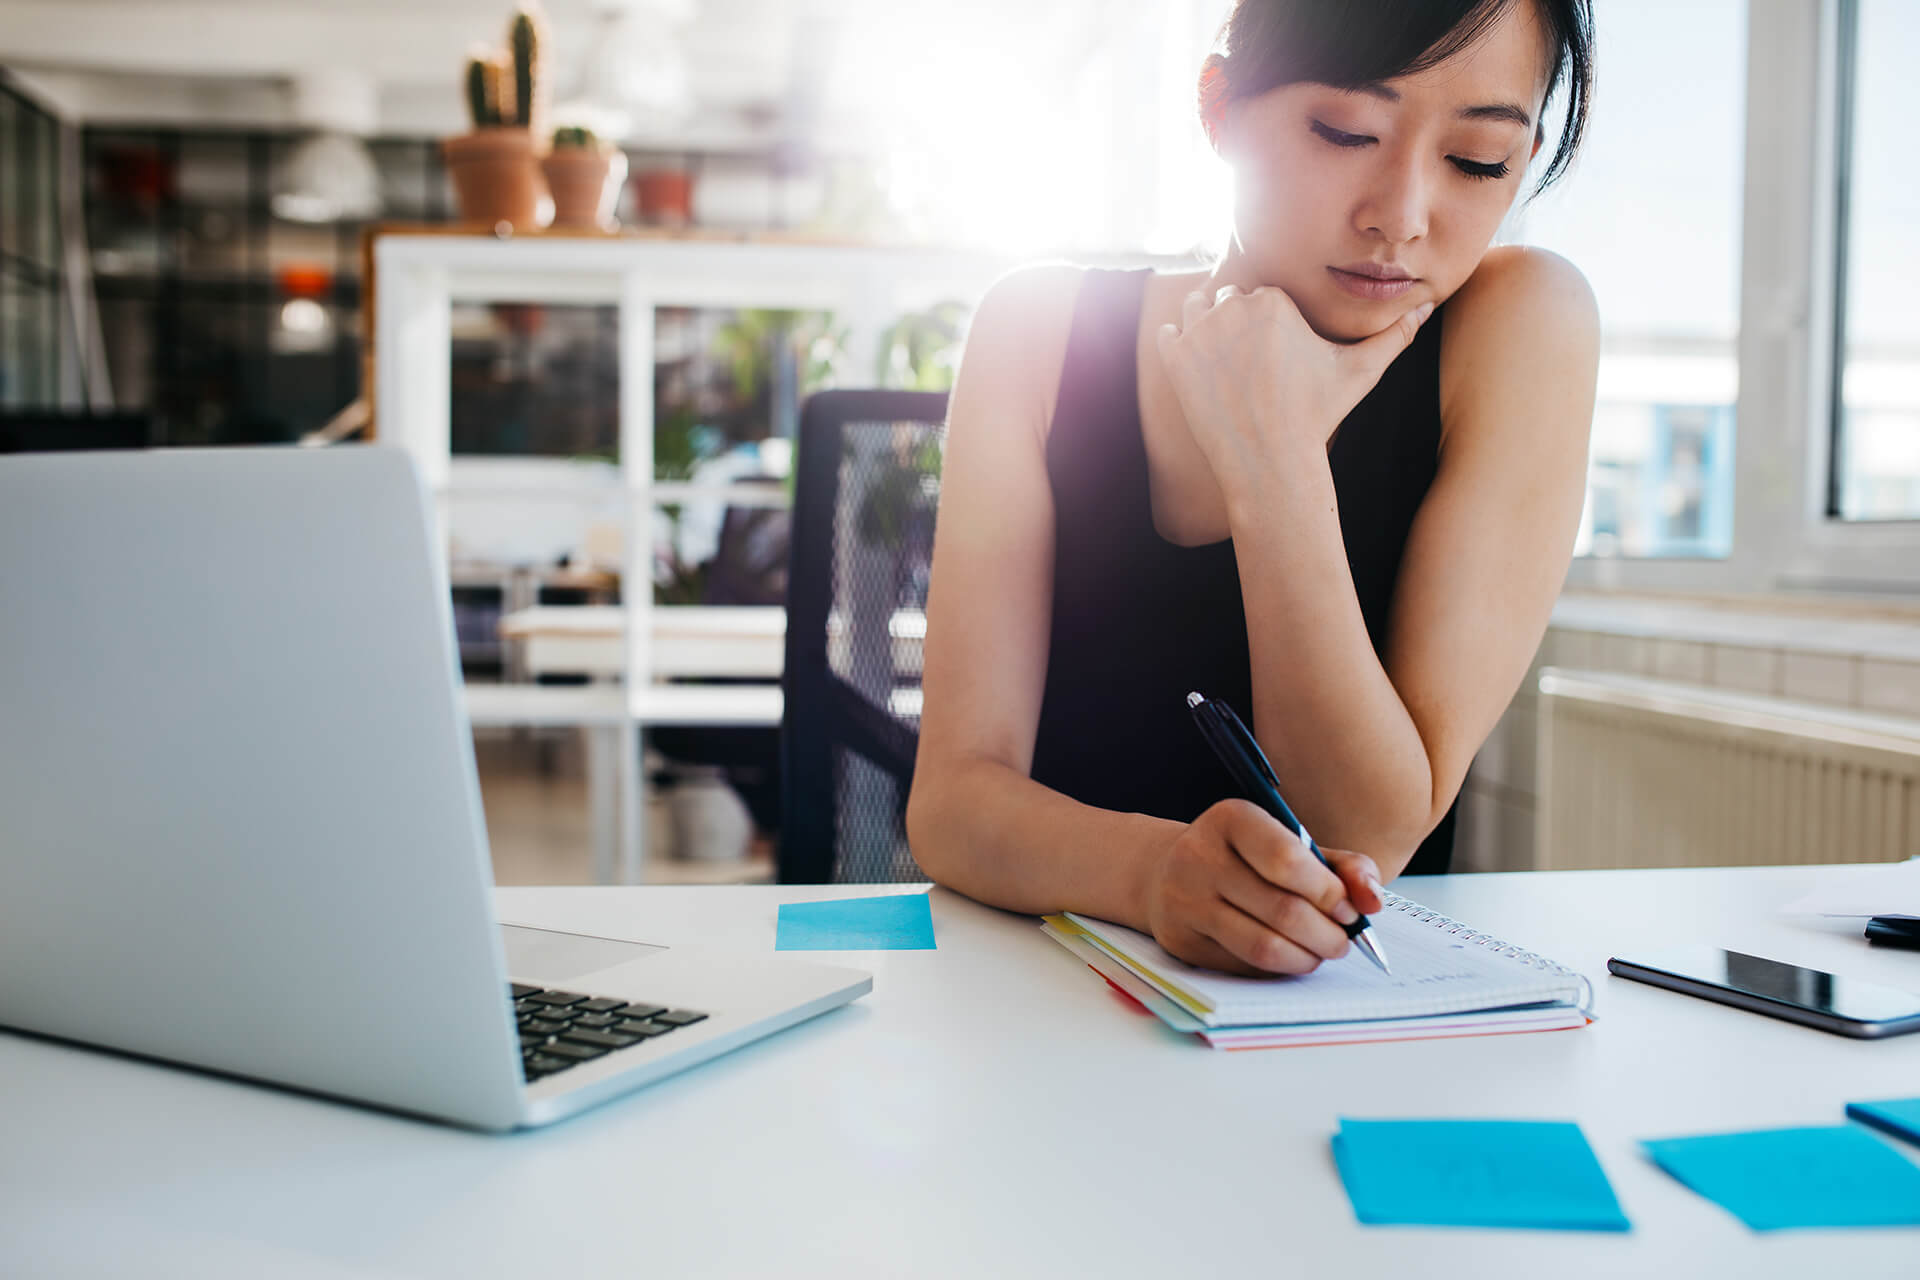 Can't stay focused? Try these 4 tricks